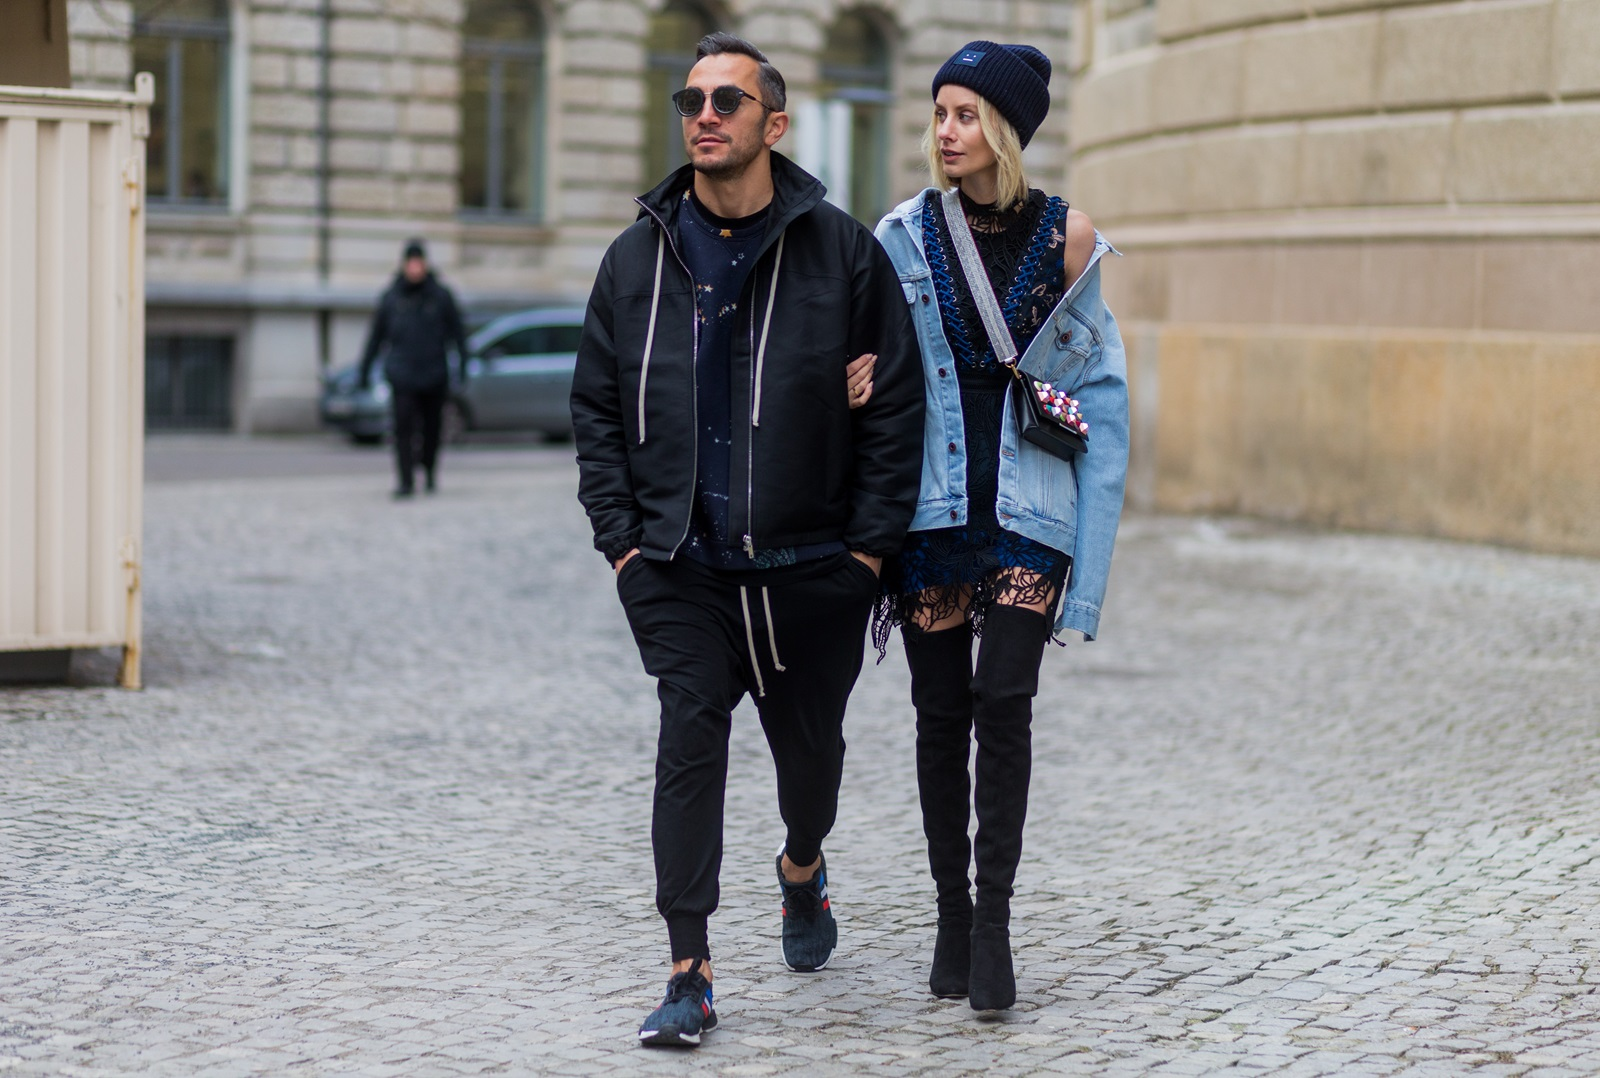 BERLIN, GERMANY - JANUARY 19: Couple Lisa Hahnbueck wearing Off White Printed Denim Jacket Men Section, Self-Portrait Embroidered Dress with Lacing, Over knee Boots Stuart Weitzman Style Alllegs, Acne Studios Beanie, Fendi Clutch with colored Studs with MCM Phython strap and Dima: RICK OWENS Zipped Jacket, Valentino Cosmo Printed sweatshirt, Rick Owens Cotton harem pants, Adidas NMD R1 sneaker, Dior Magnitude Sunglasses during the Mercedes-Benz Fashion Week Berlin A/W 2017 at Kaufhaus Jandorf on January 19, 2017 in Berlin, Germany. (Photo by Christian Vierig/Getty Images) *** Local Caption *** Lisa Hahnbueck; Dima